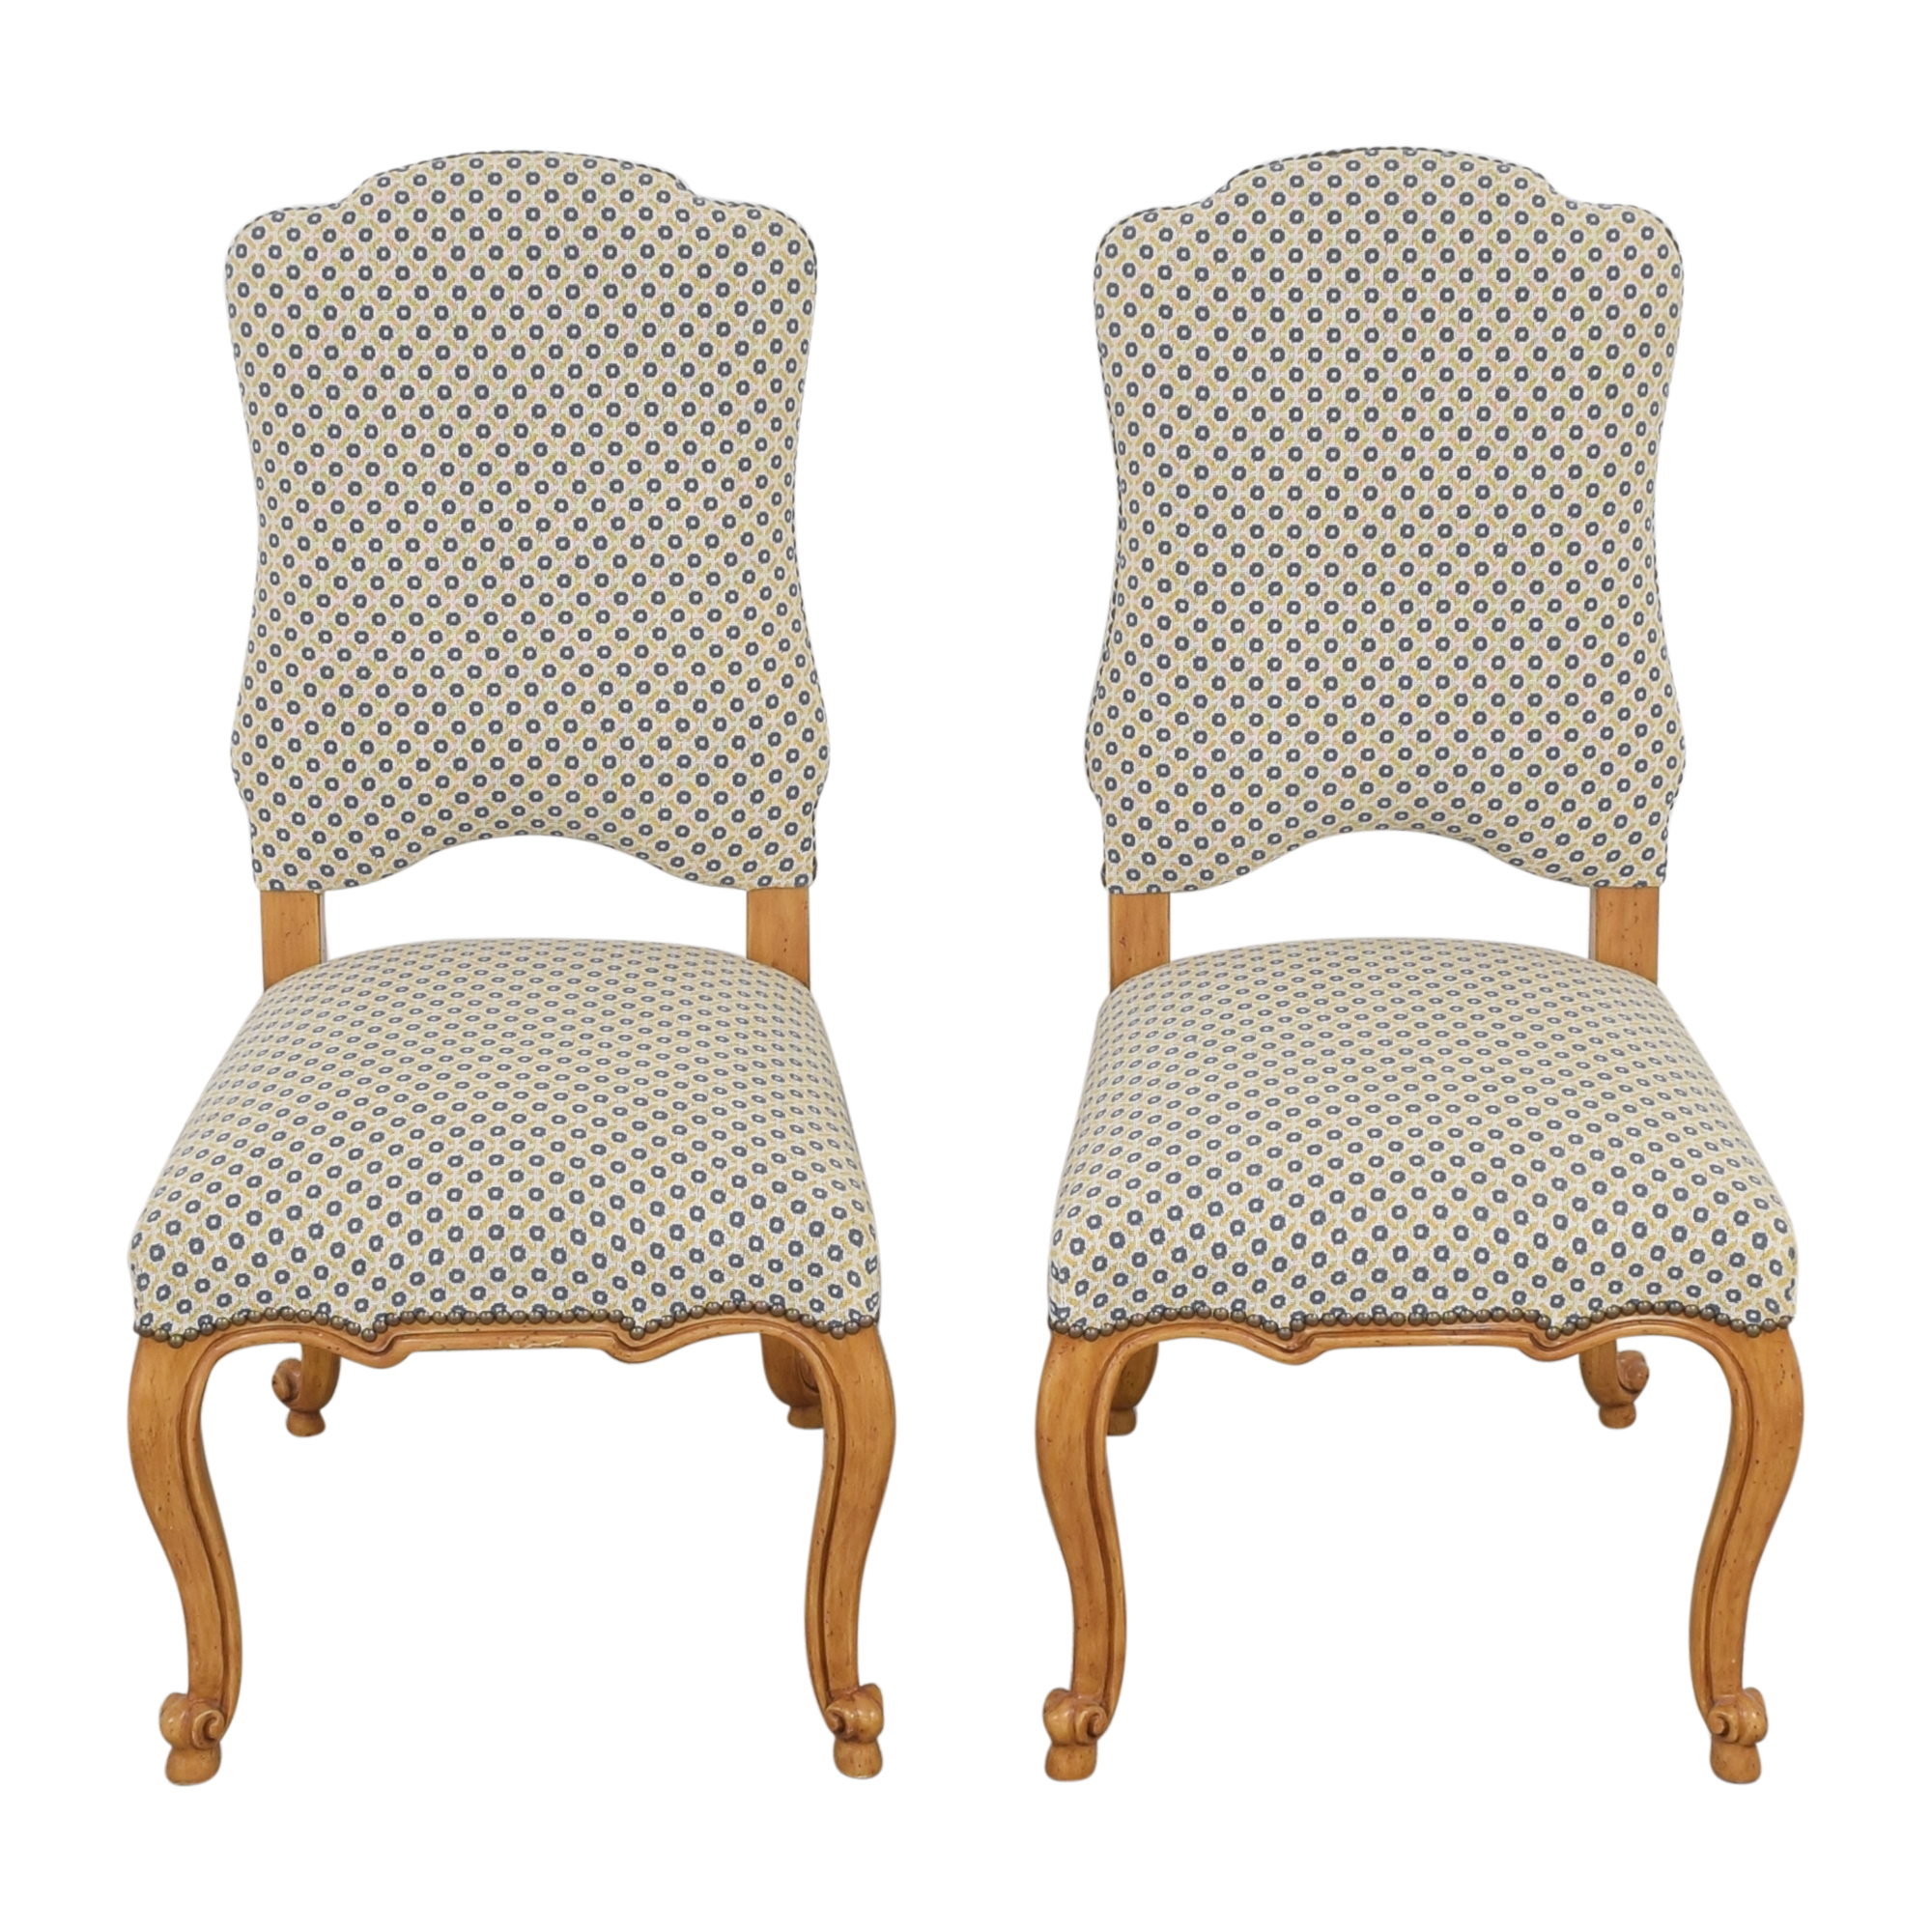 Minton-Spidell Regence Dining Side Chairs / Chairs